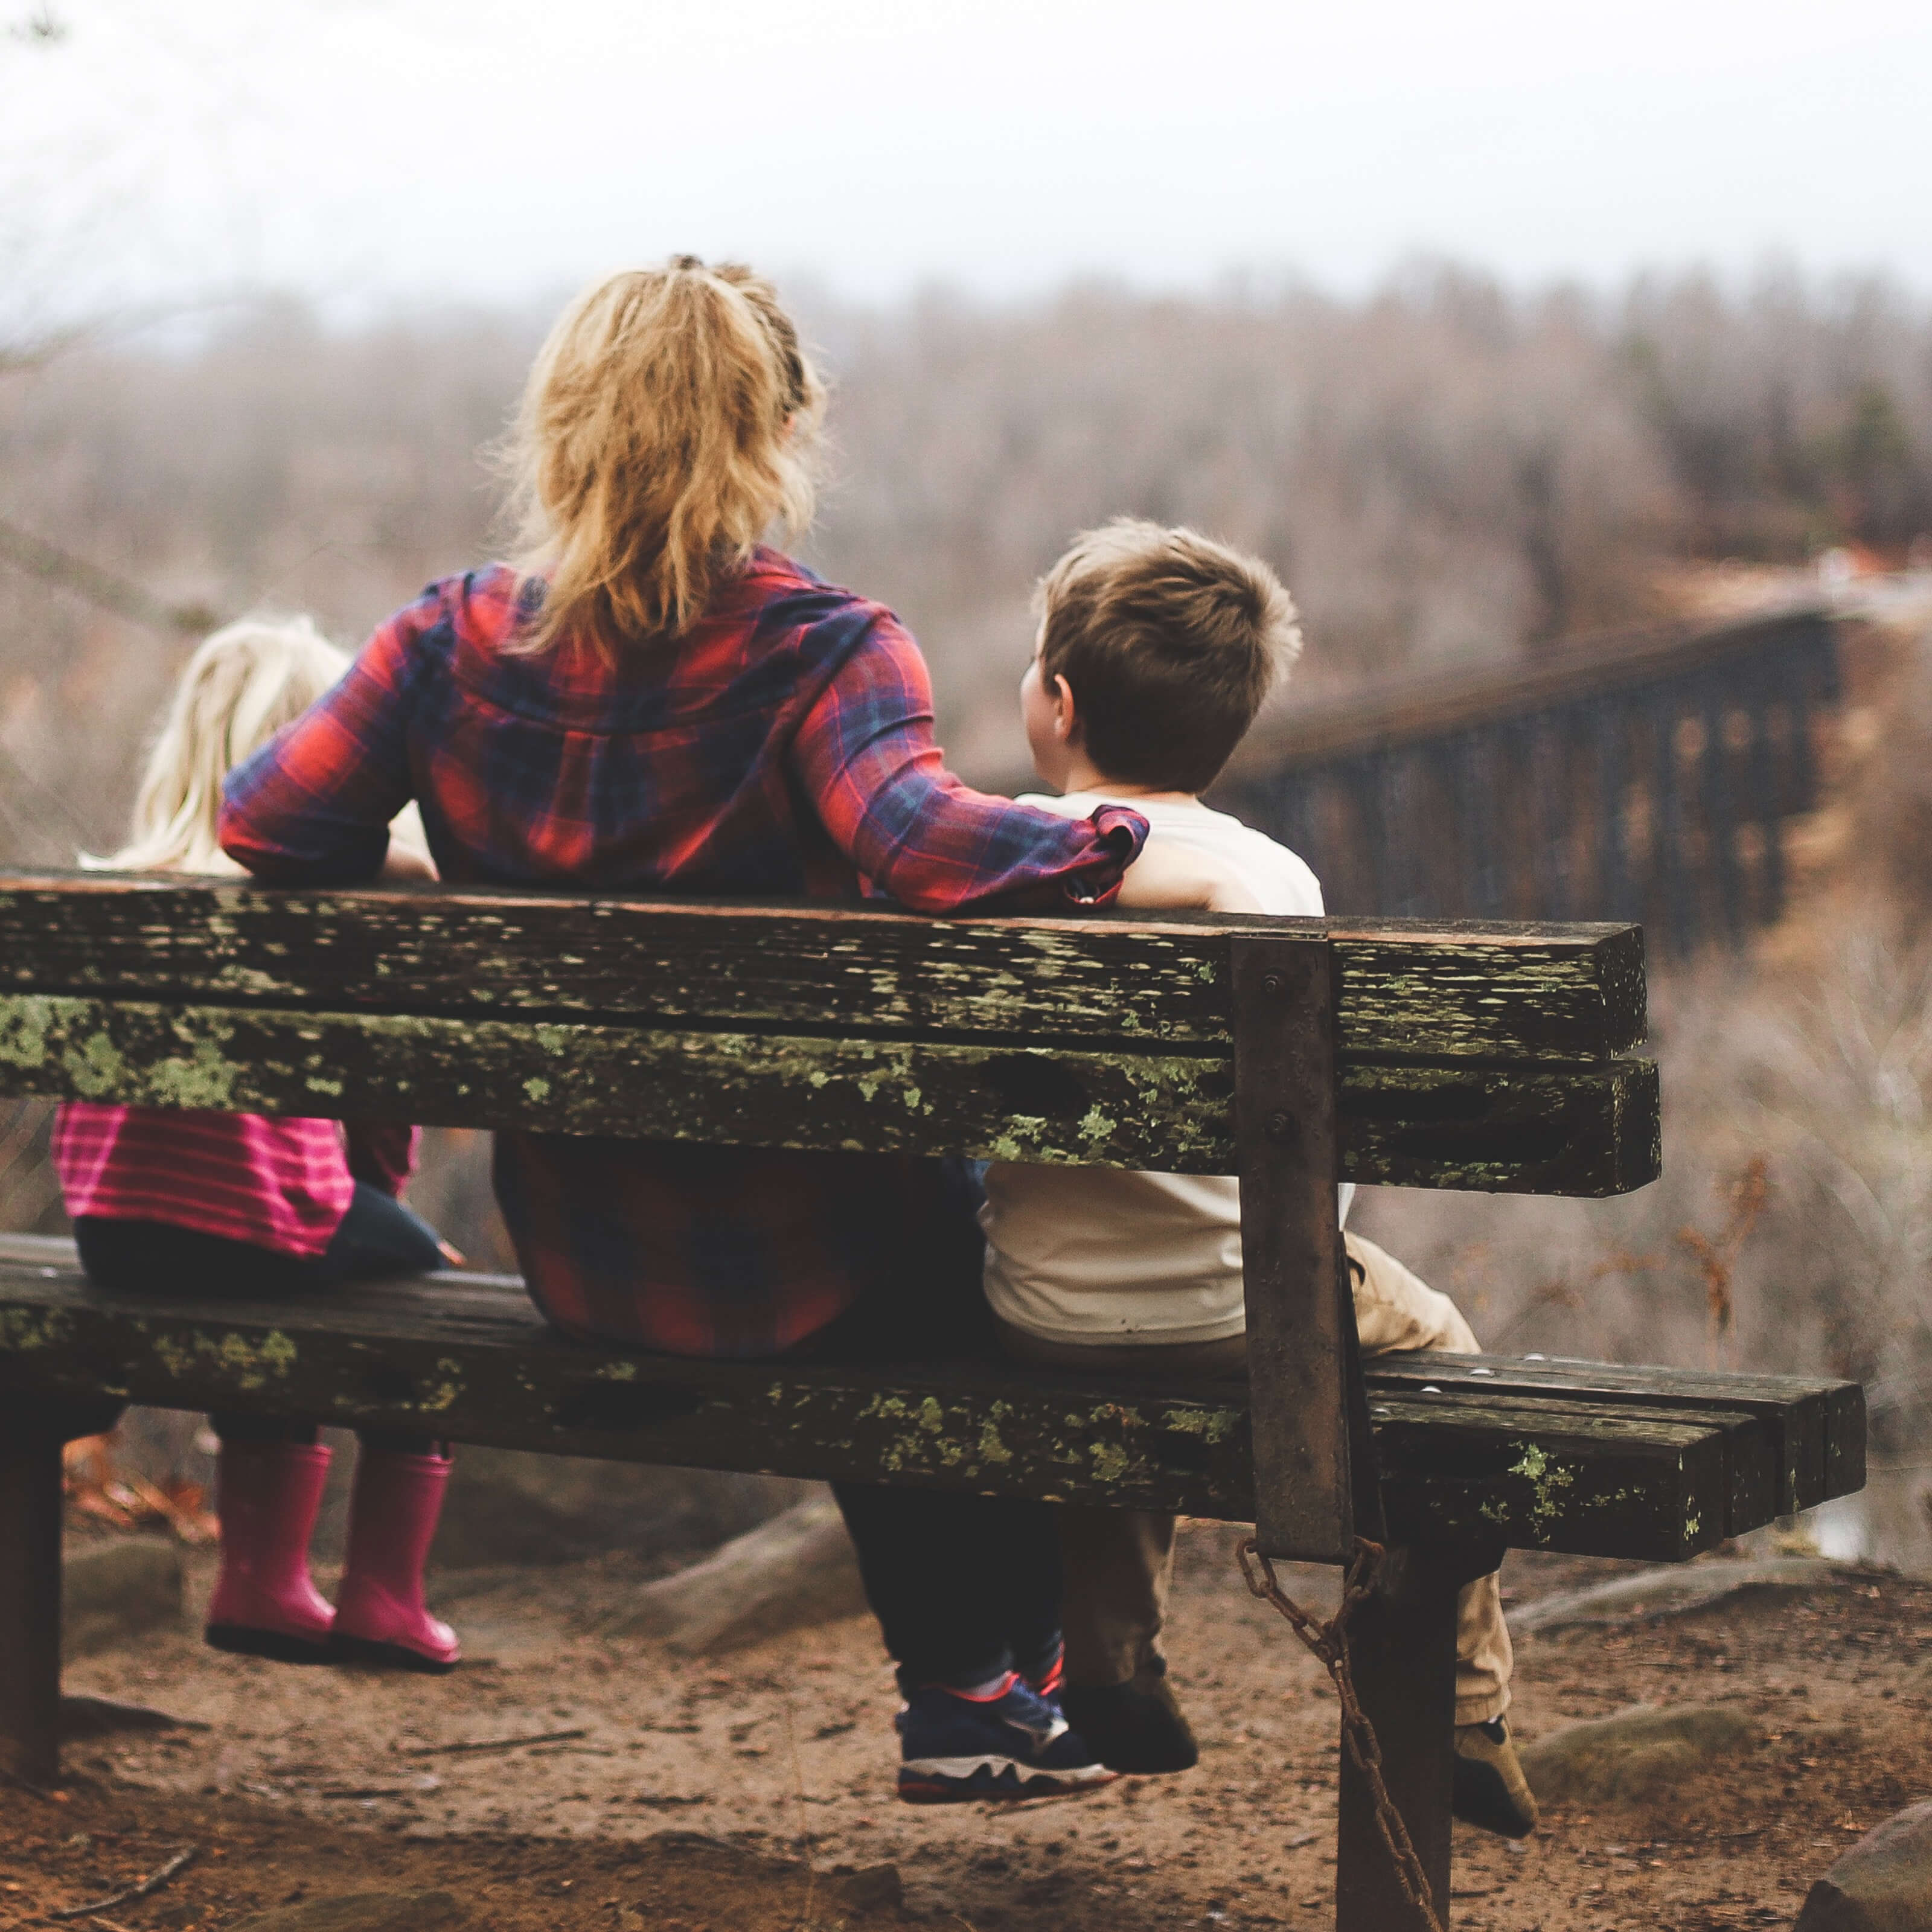 8 Simple Ways Your Family Can Become More Eco-Friendly